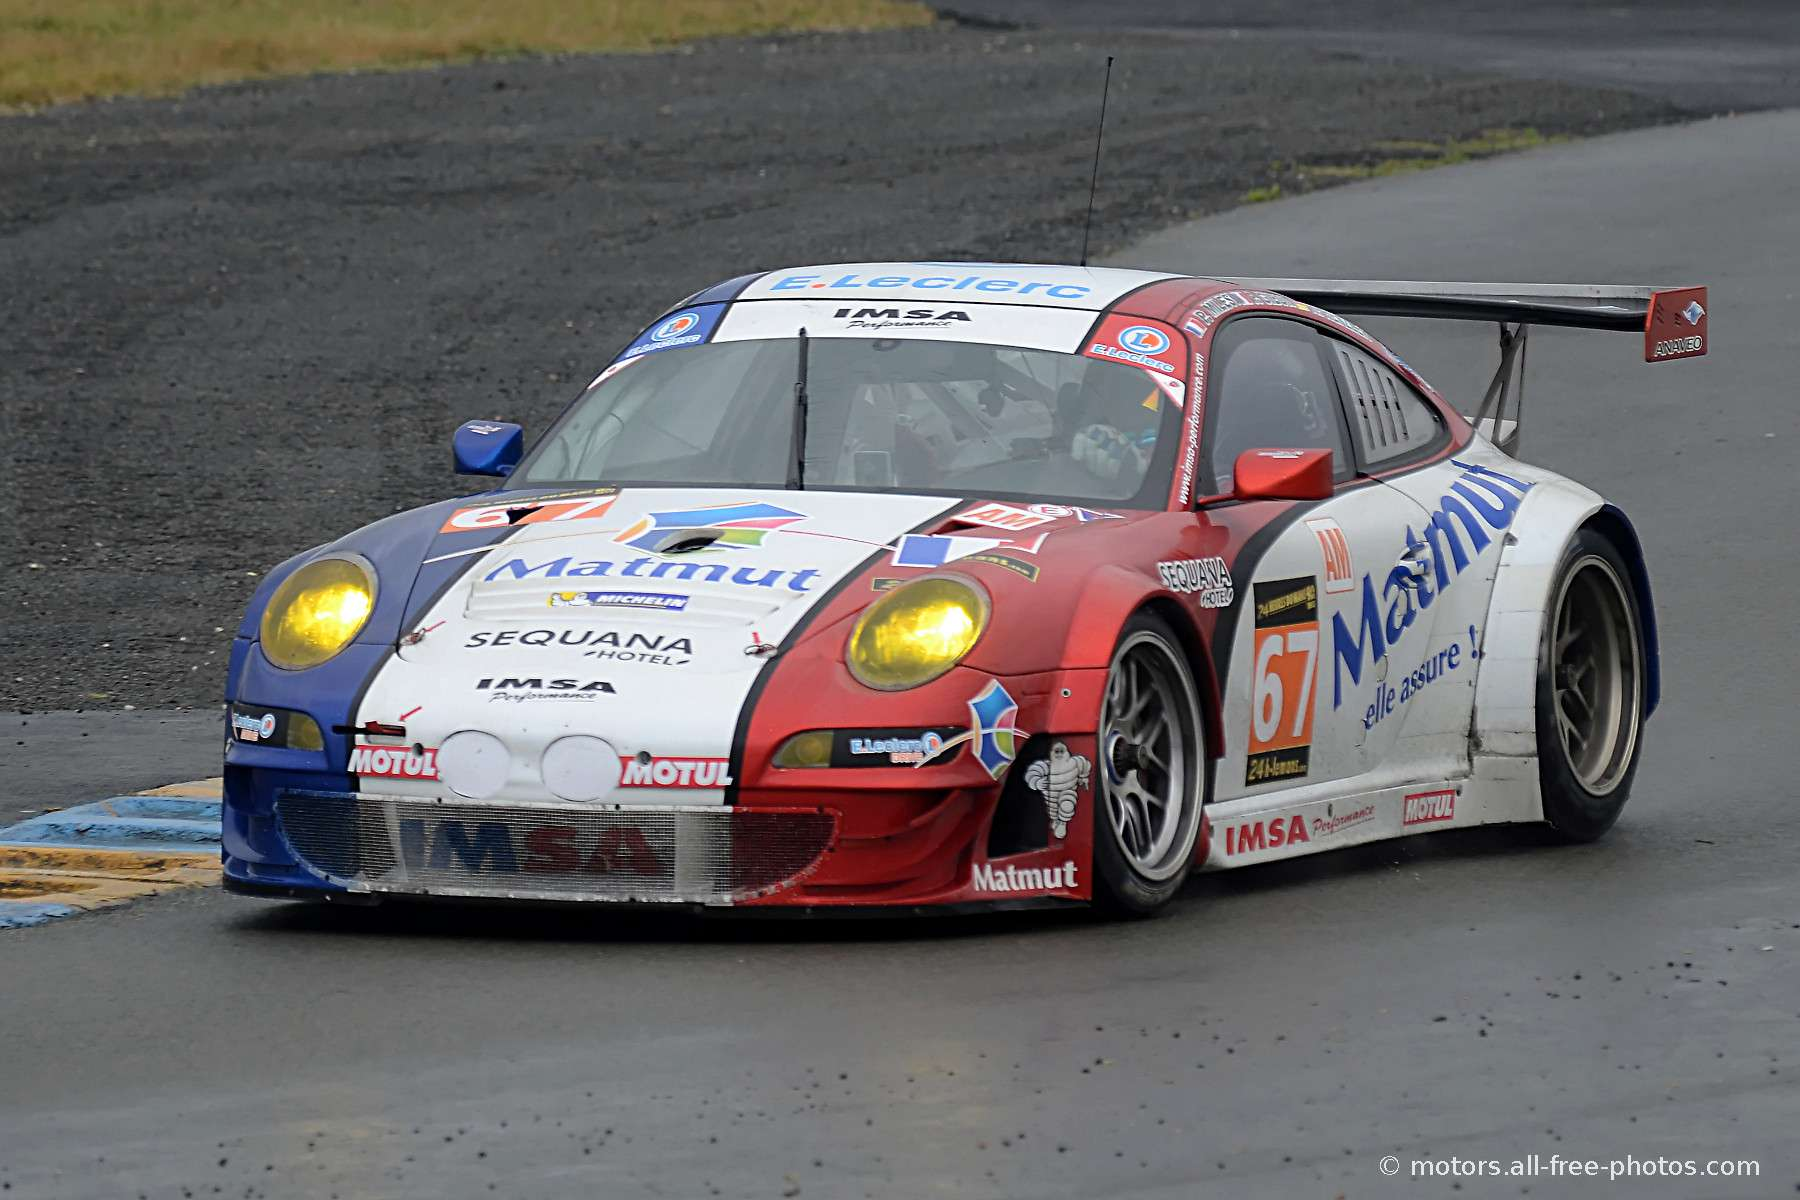 Porsche 911 GT3 RSR - Team IMSA Performance Matmut